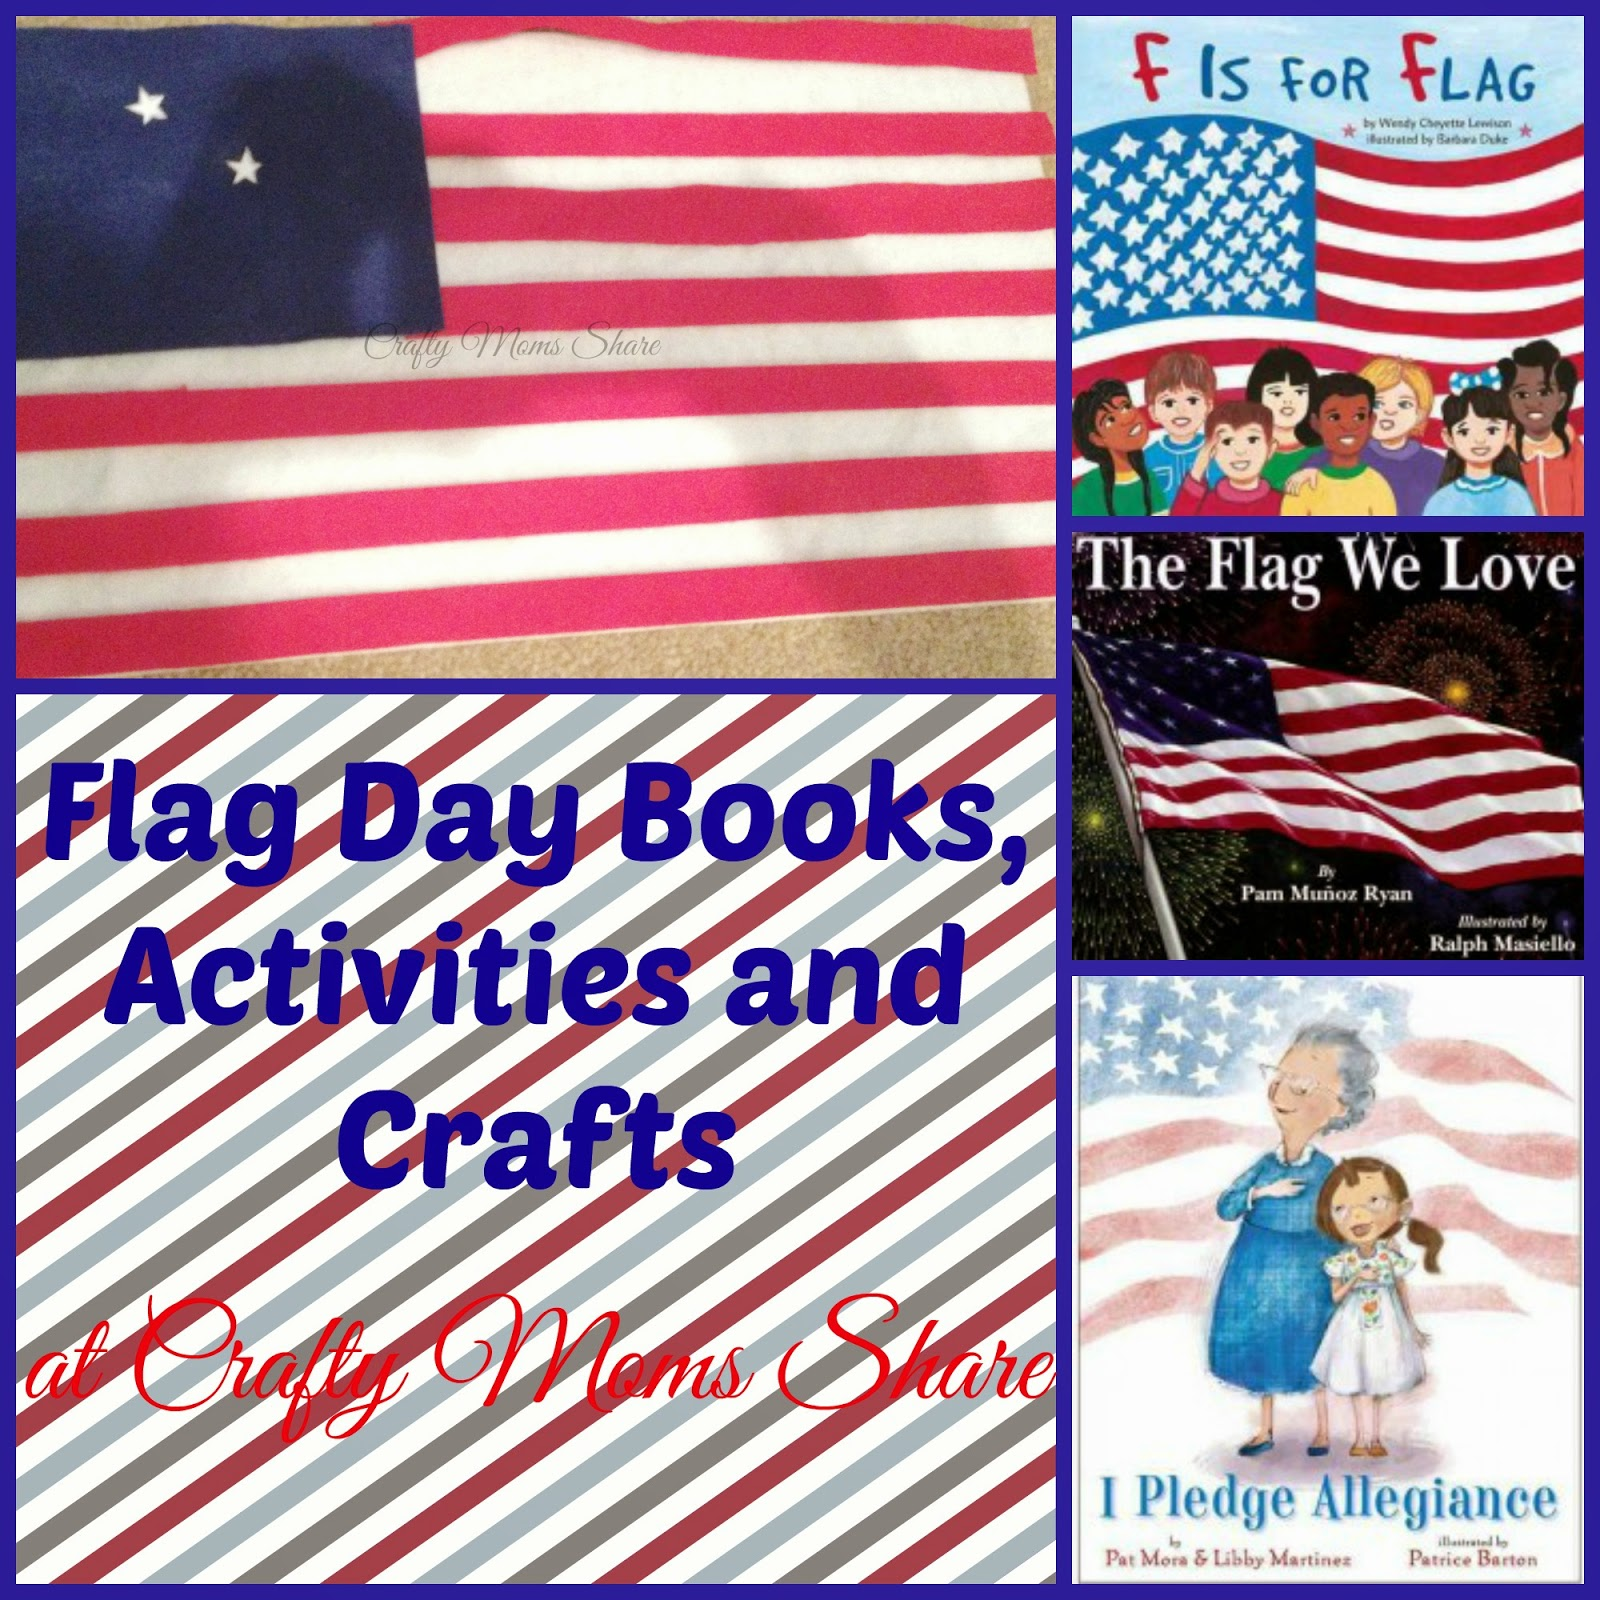 http://craftymomsshare.blogspot.com/2014/06/flag-day-books-activities-and-crafts.html